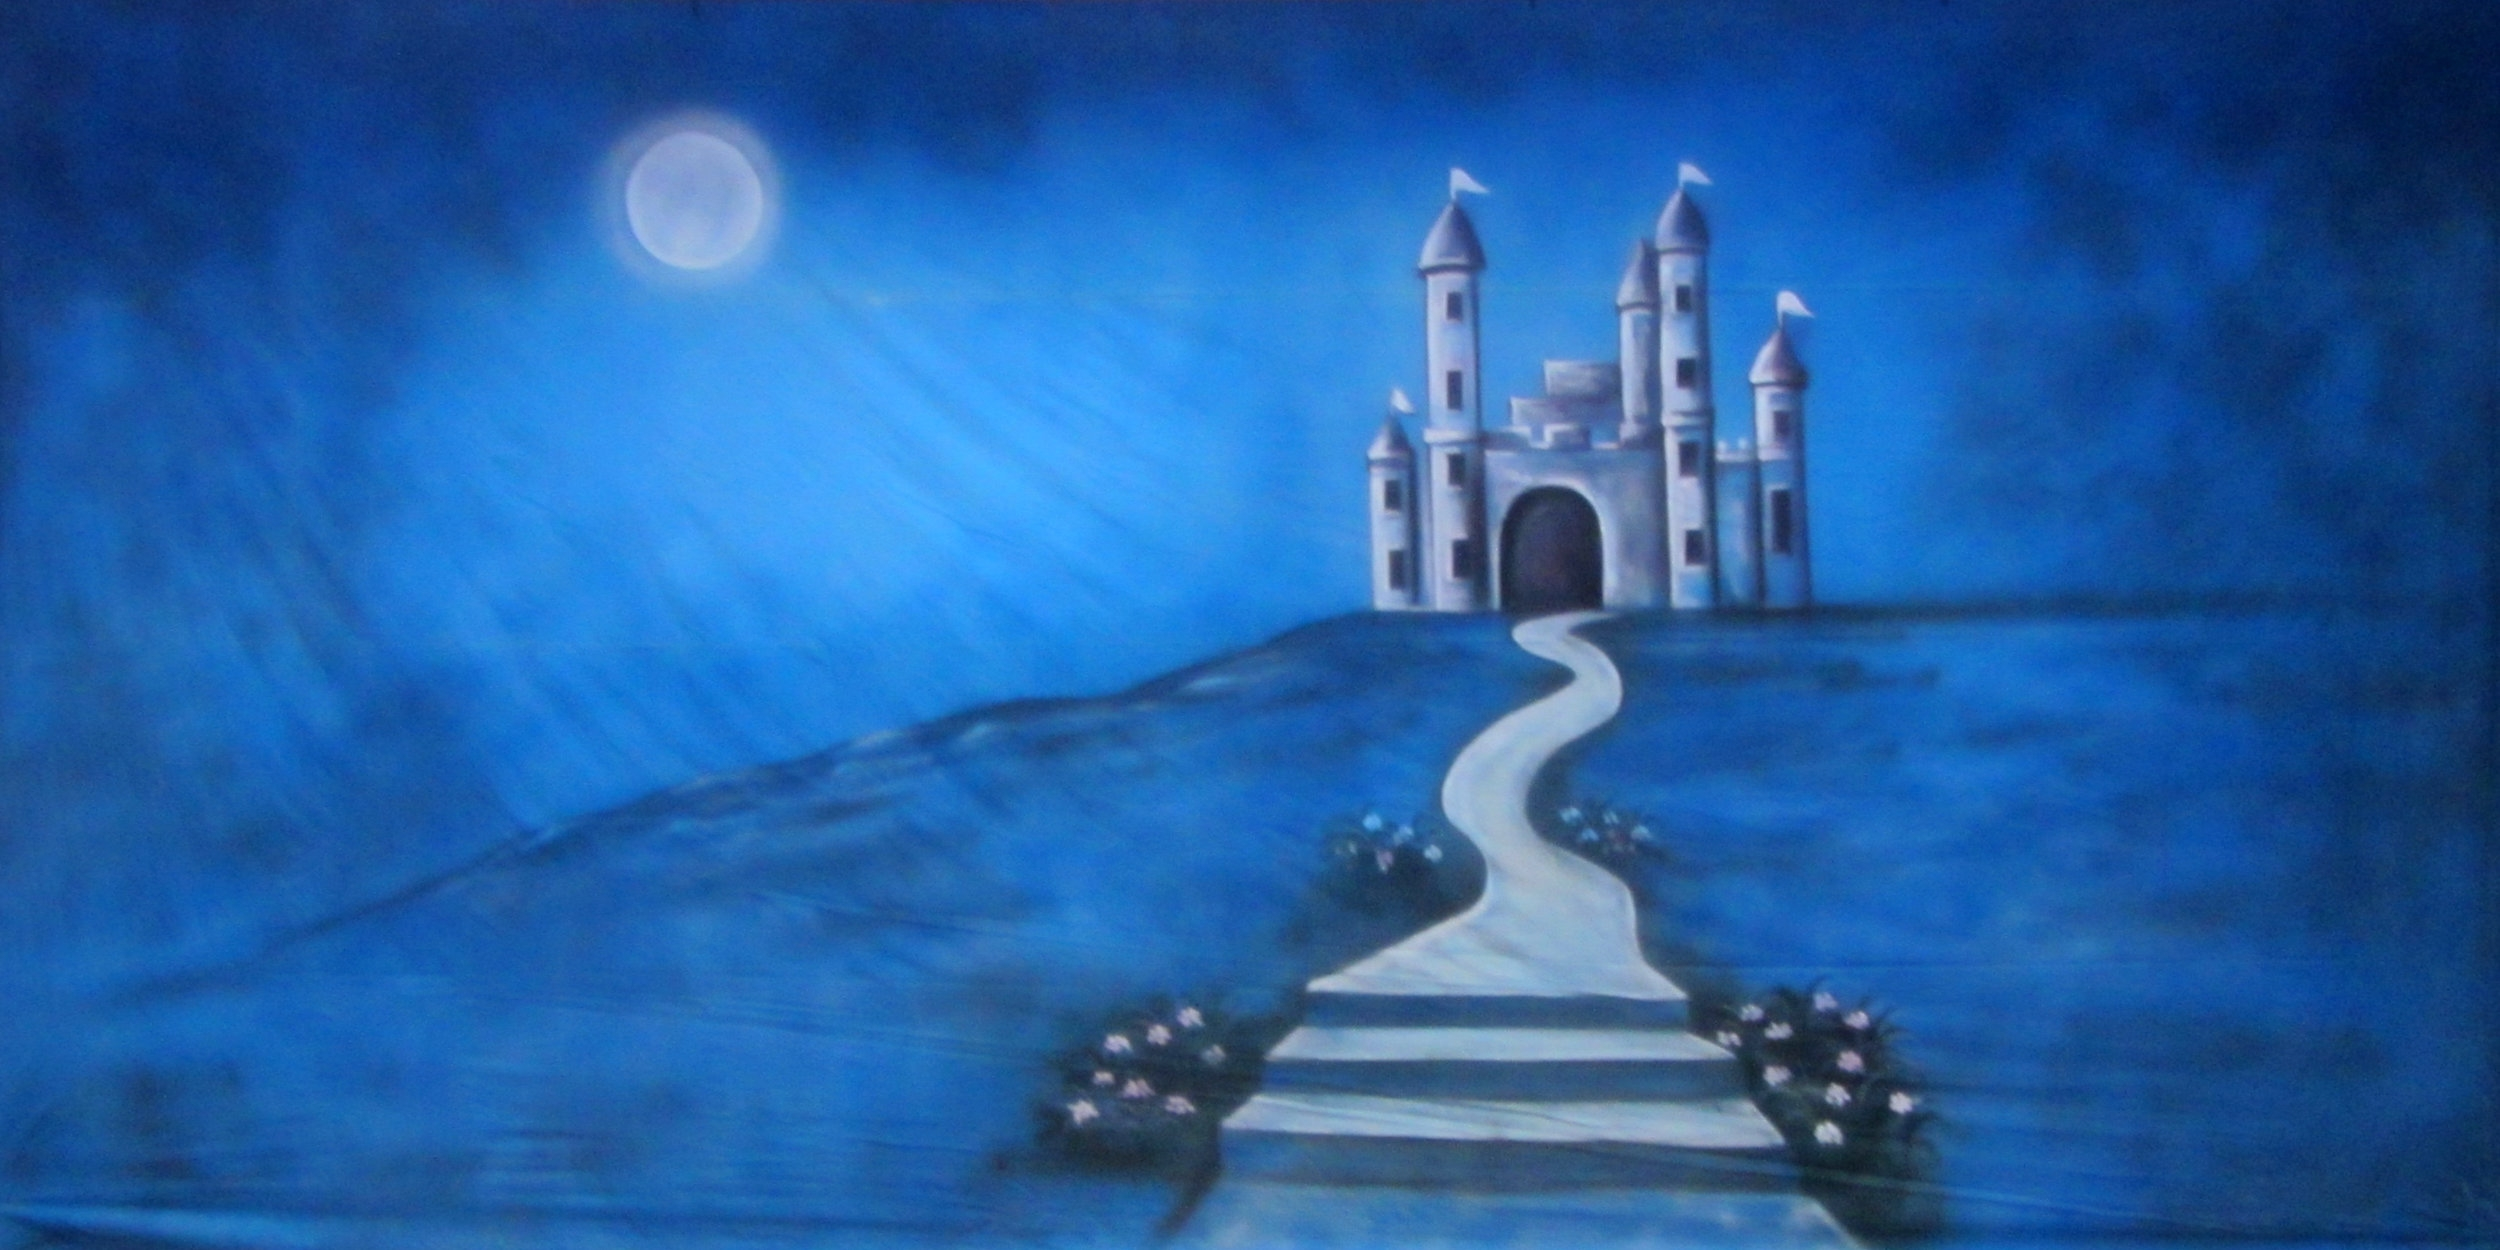 backdrop for hire - castle in moonlight - princess - medieval - game of thrones.jpg